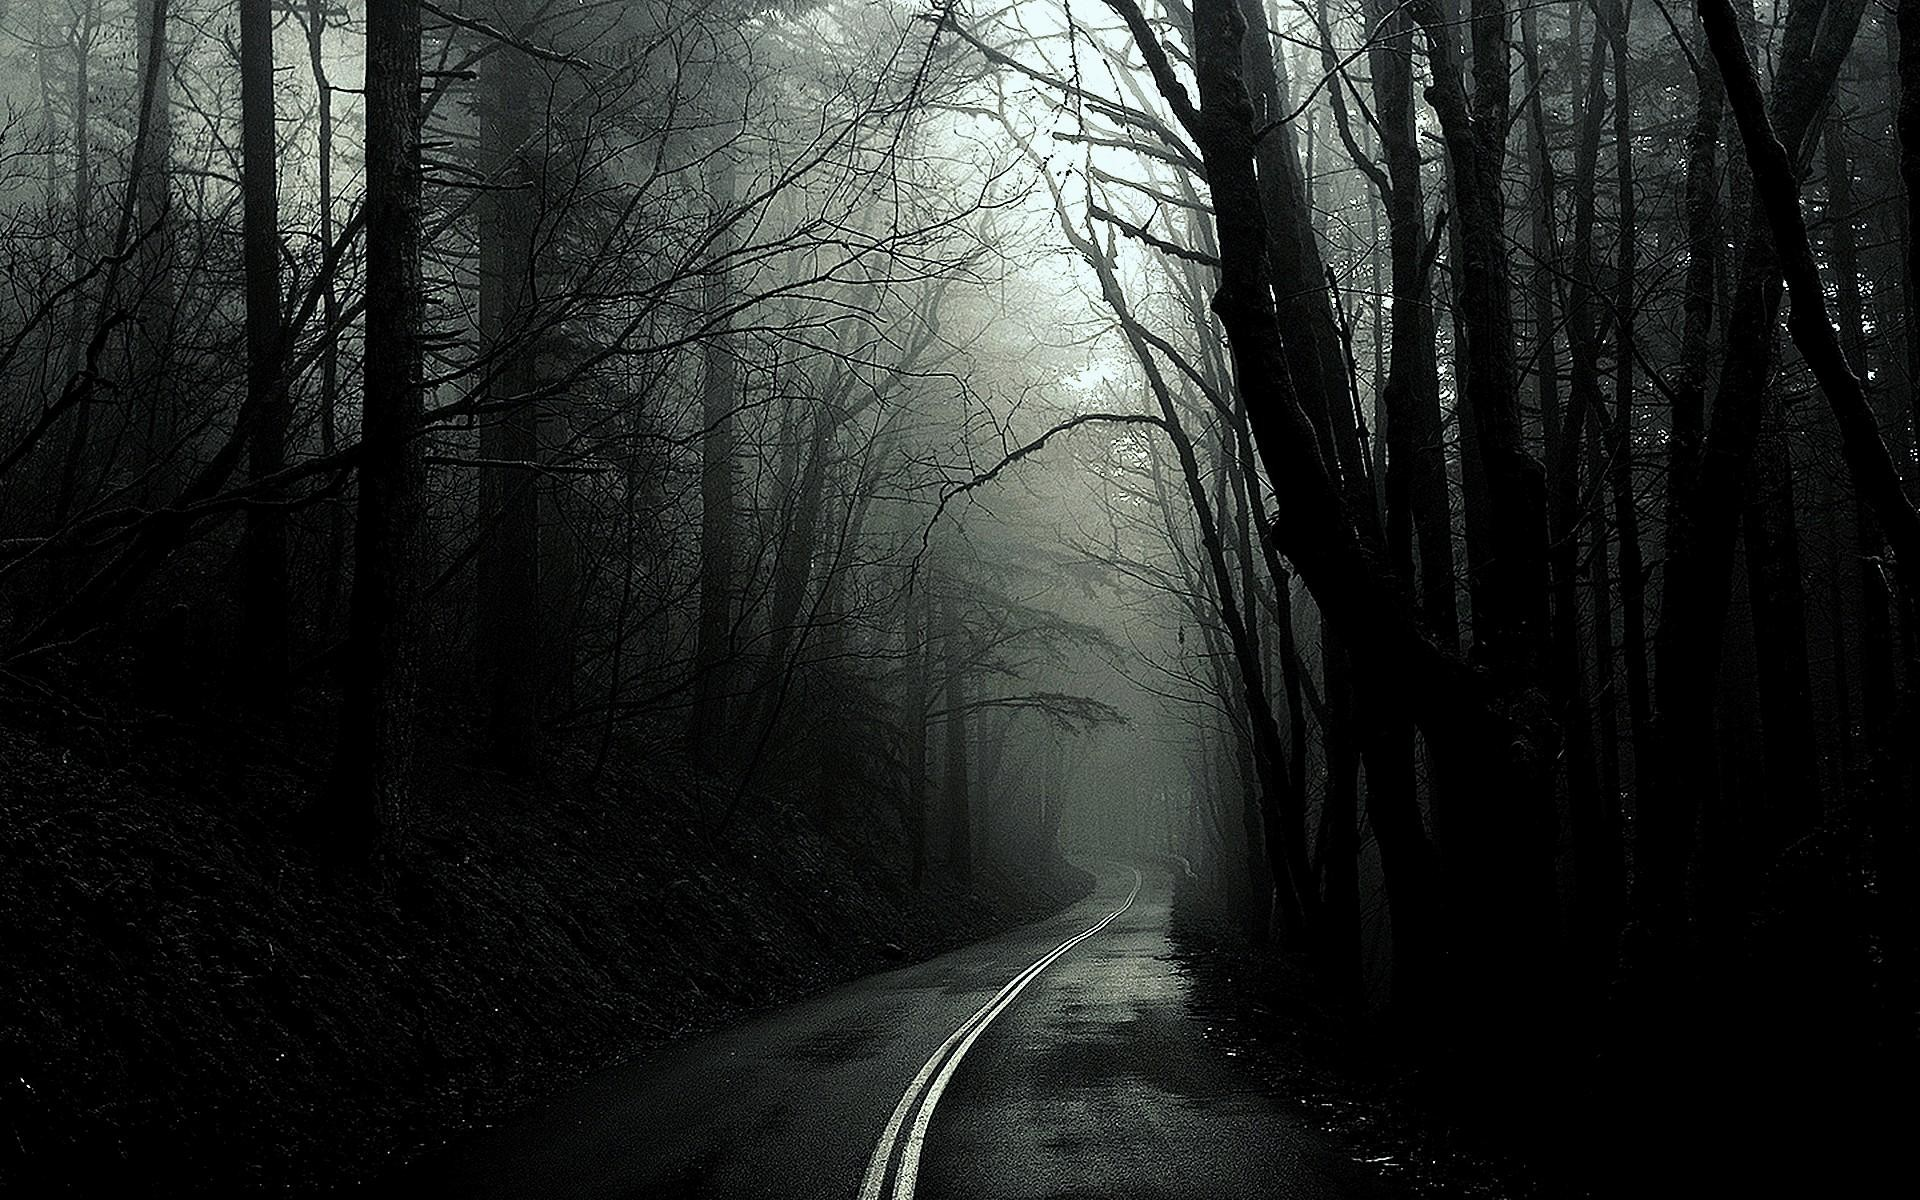 wallpaper.wiki-Amazing-Black-and-White-Forest-Background-